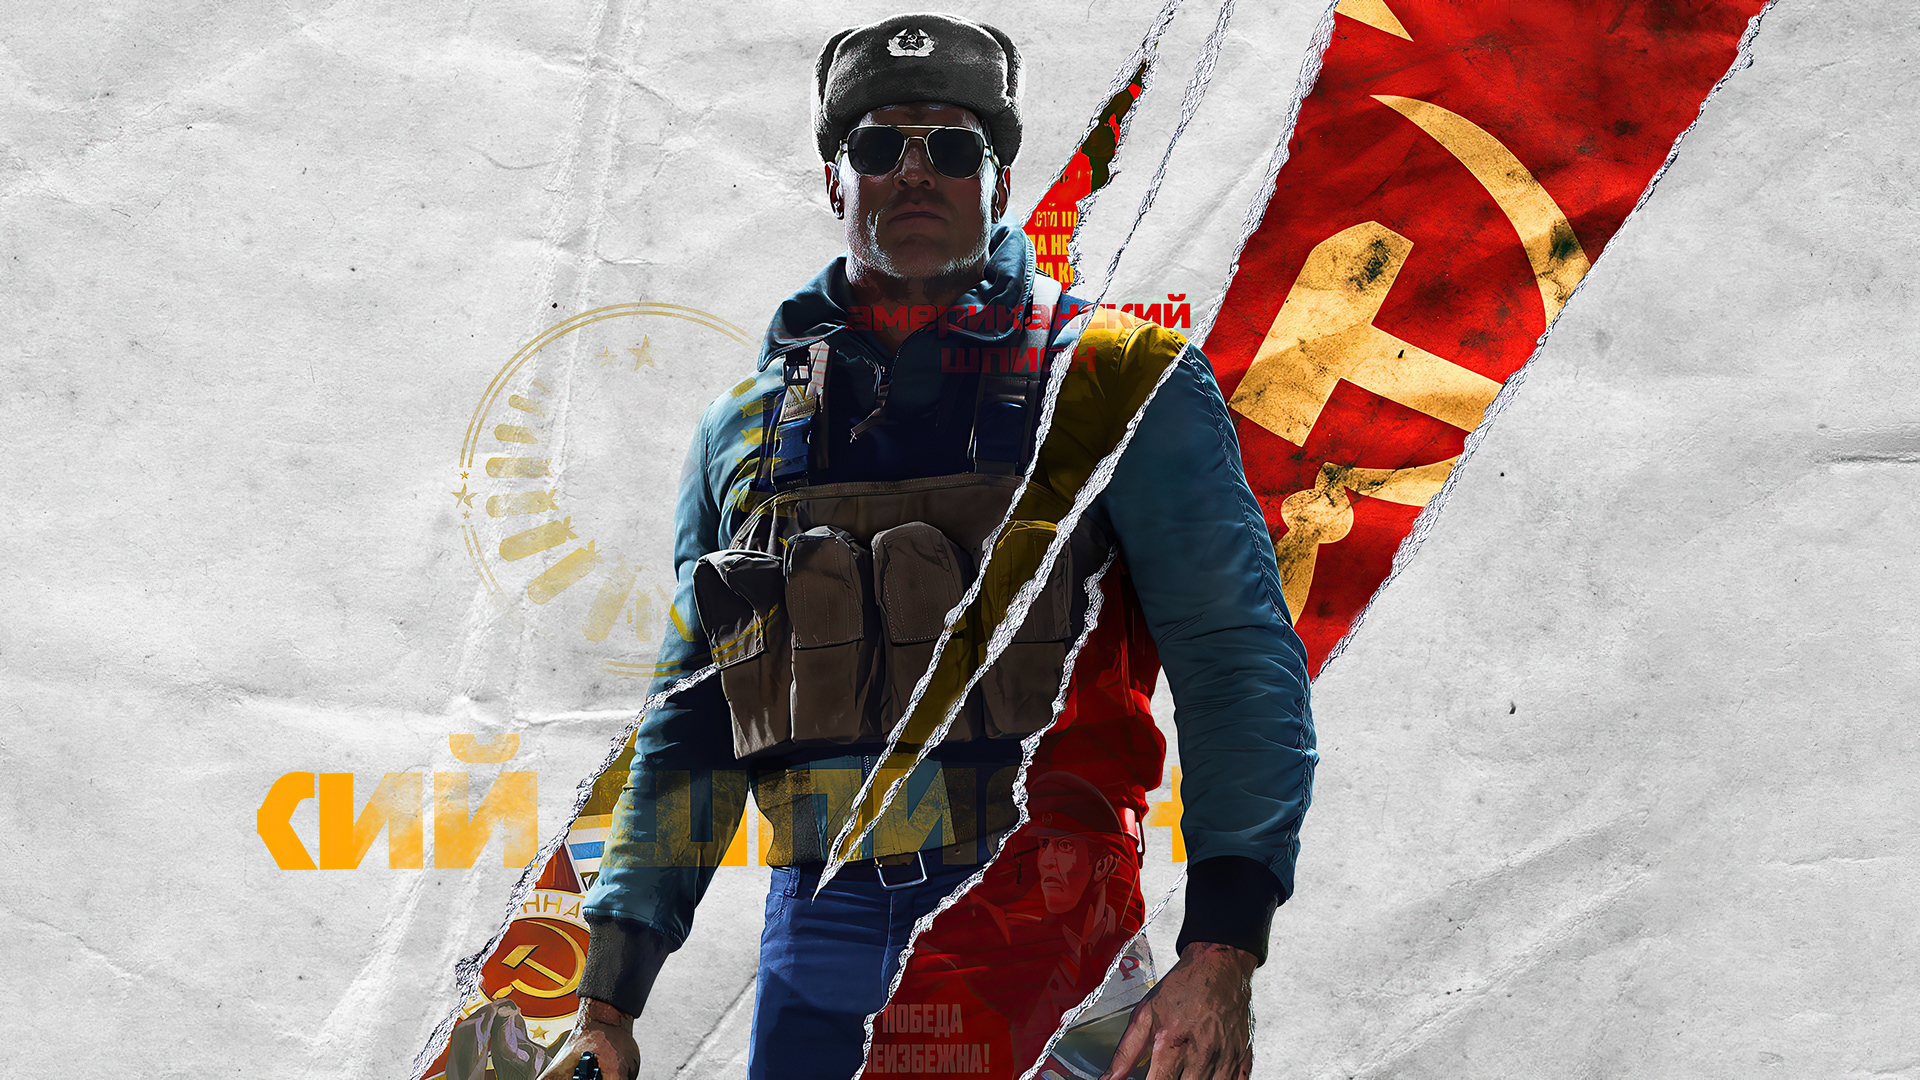 call-of-duty-black-ops-cold-war-2020-s5.jpg